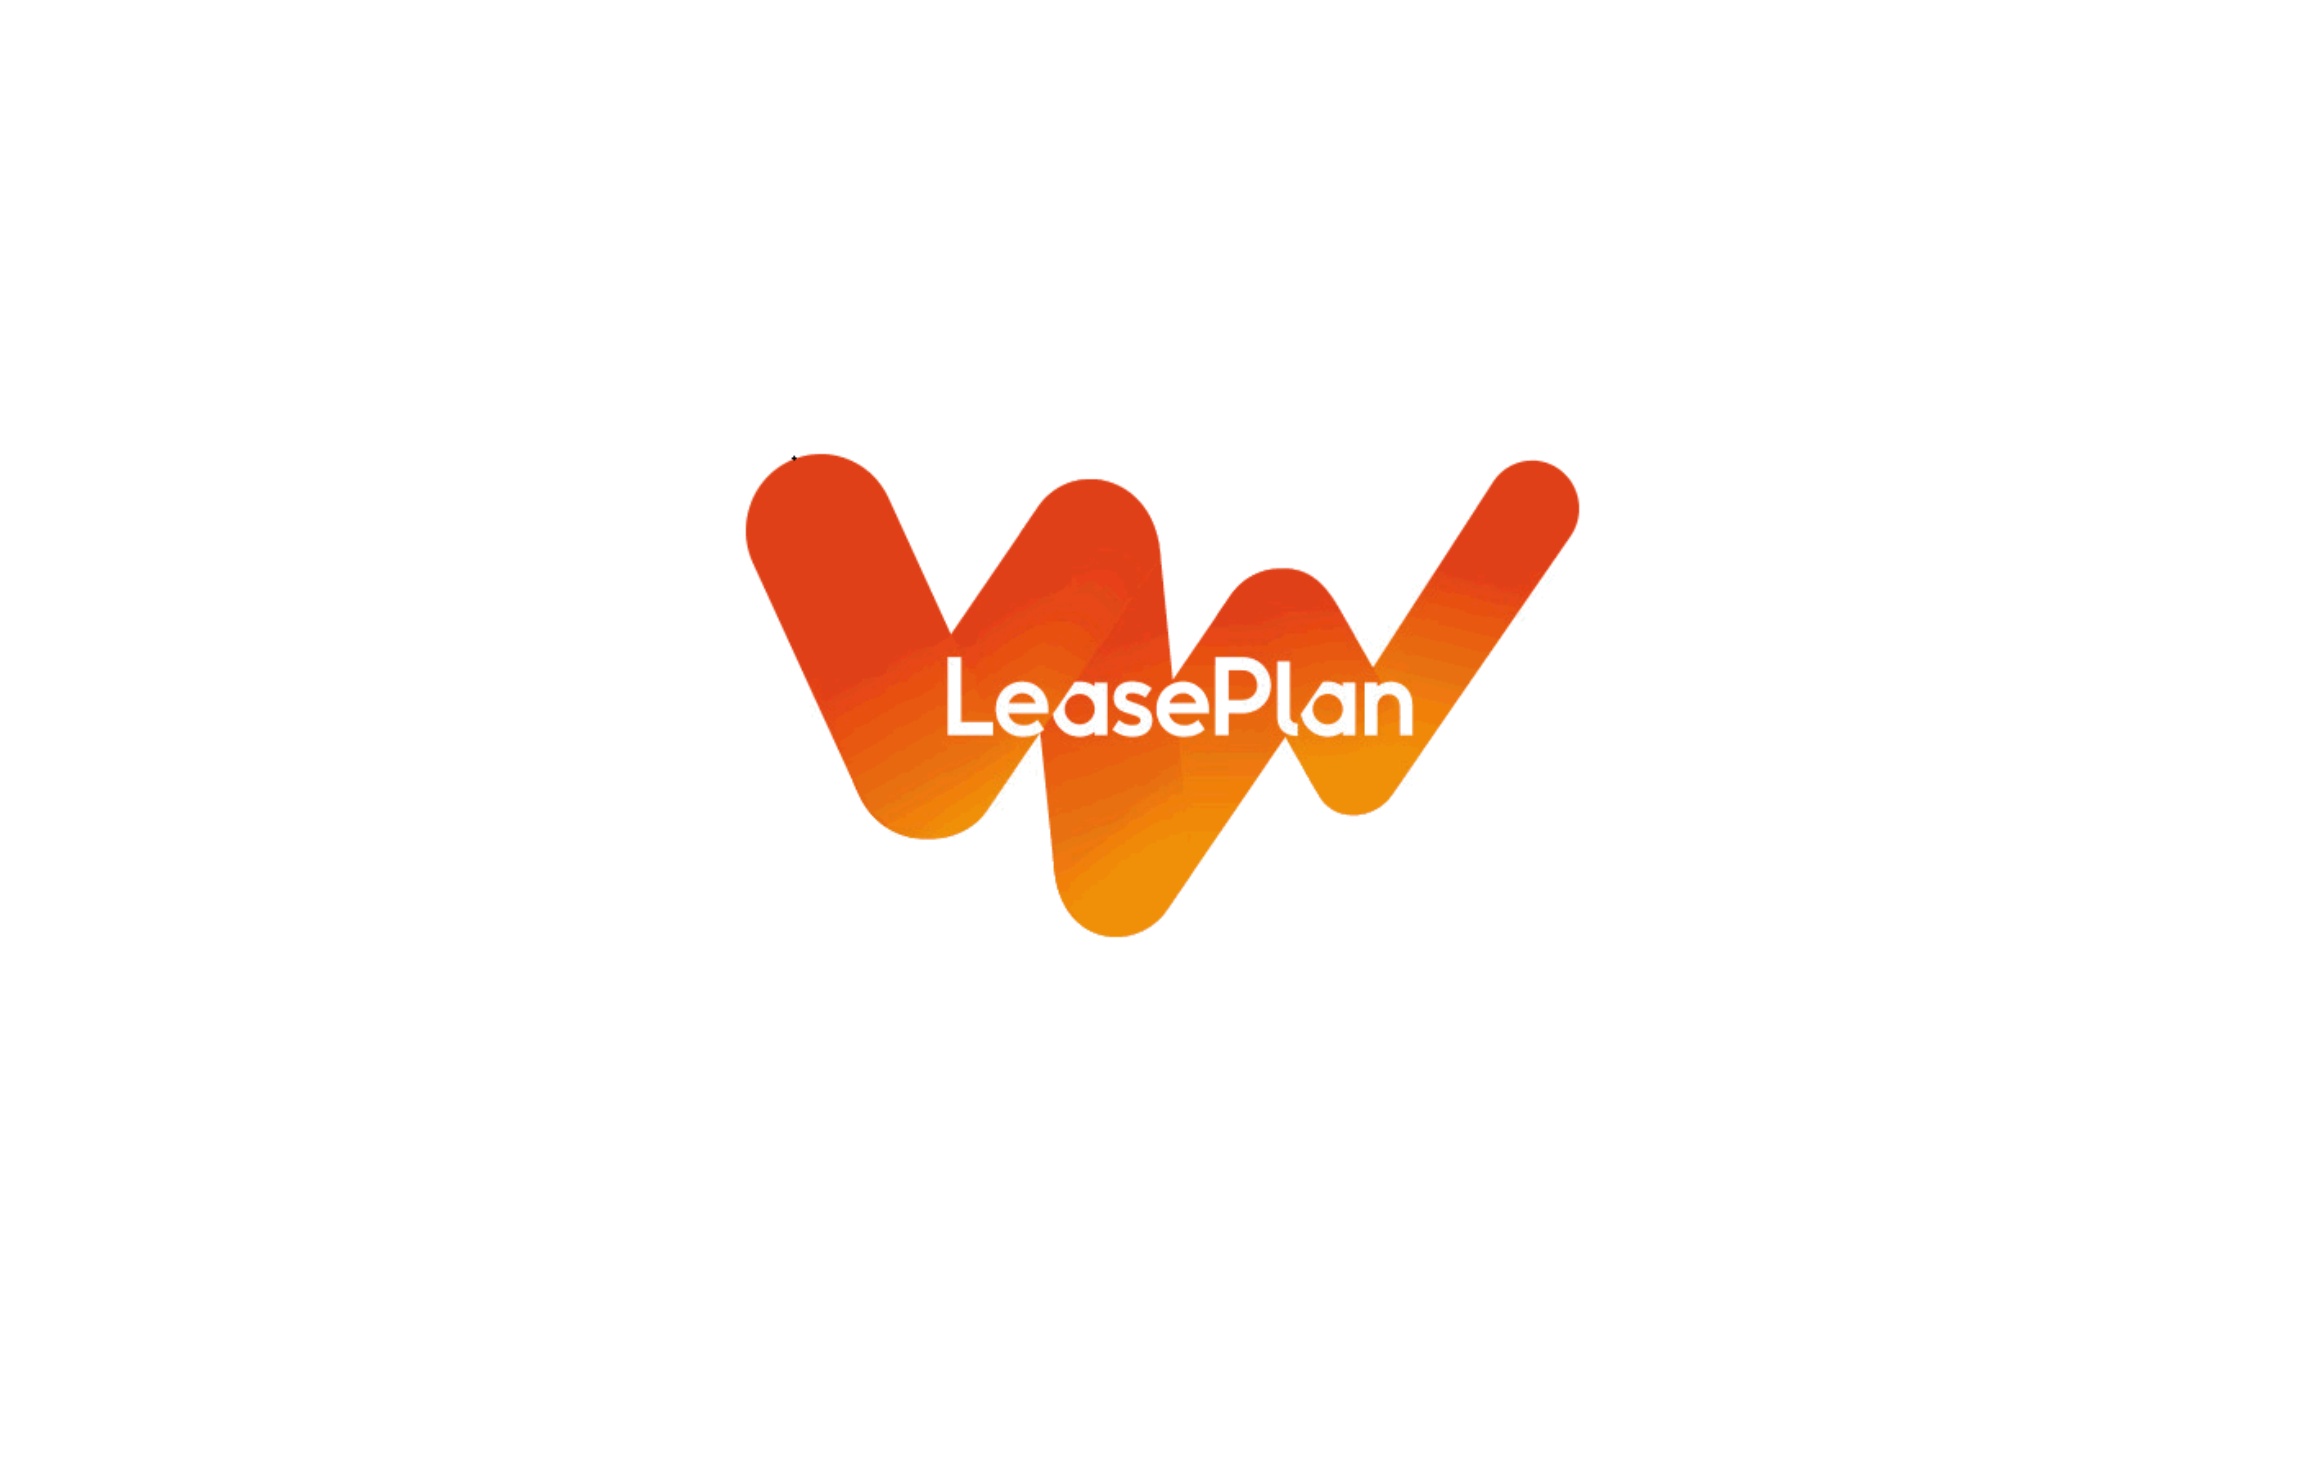 Leaseplan.png